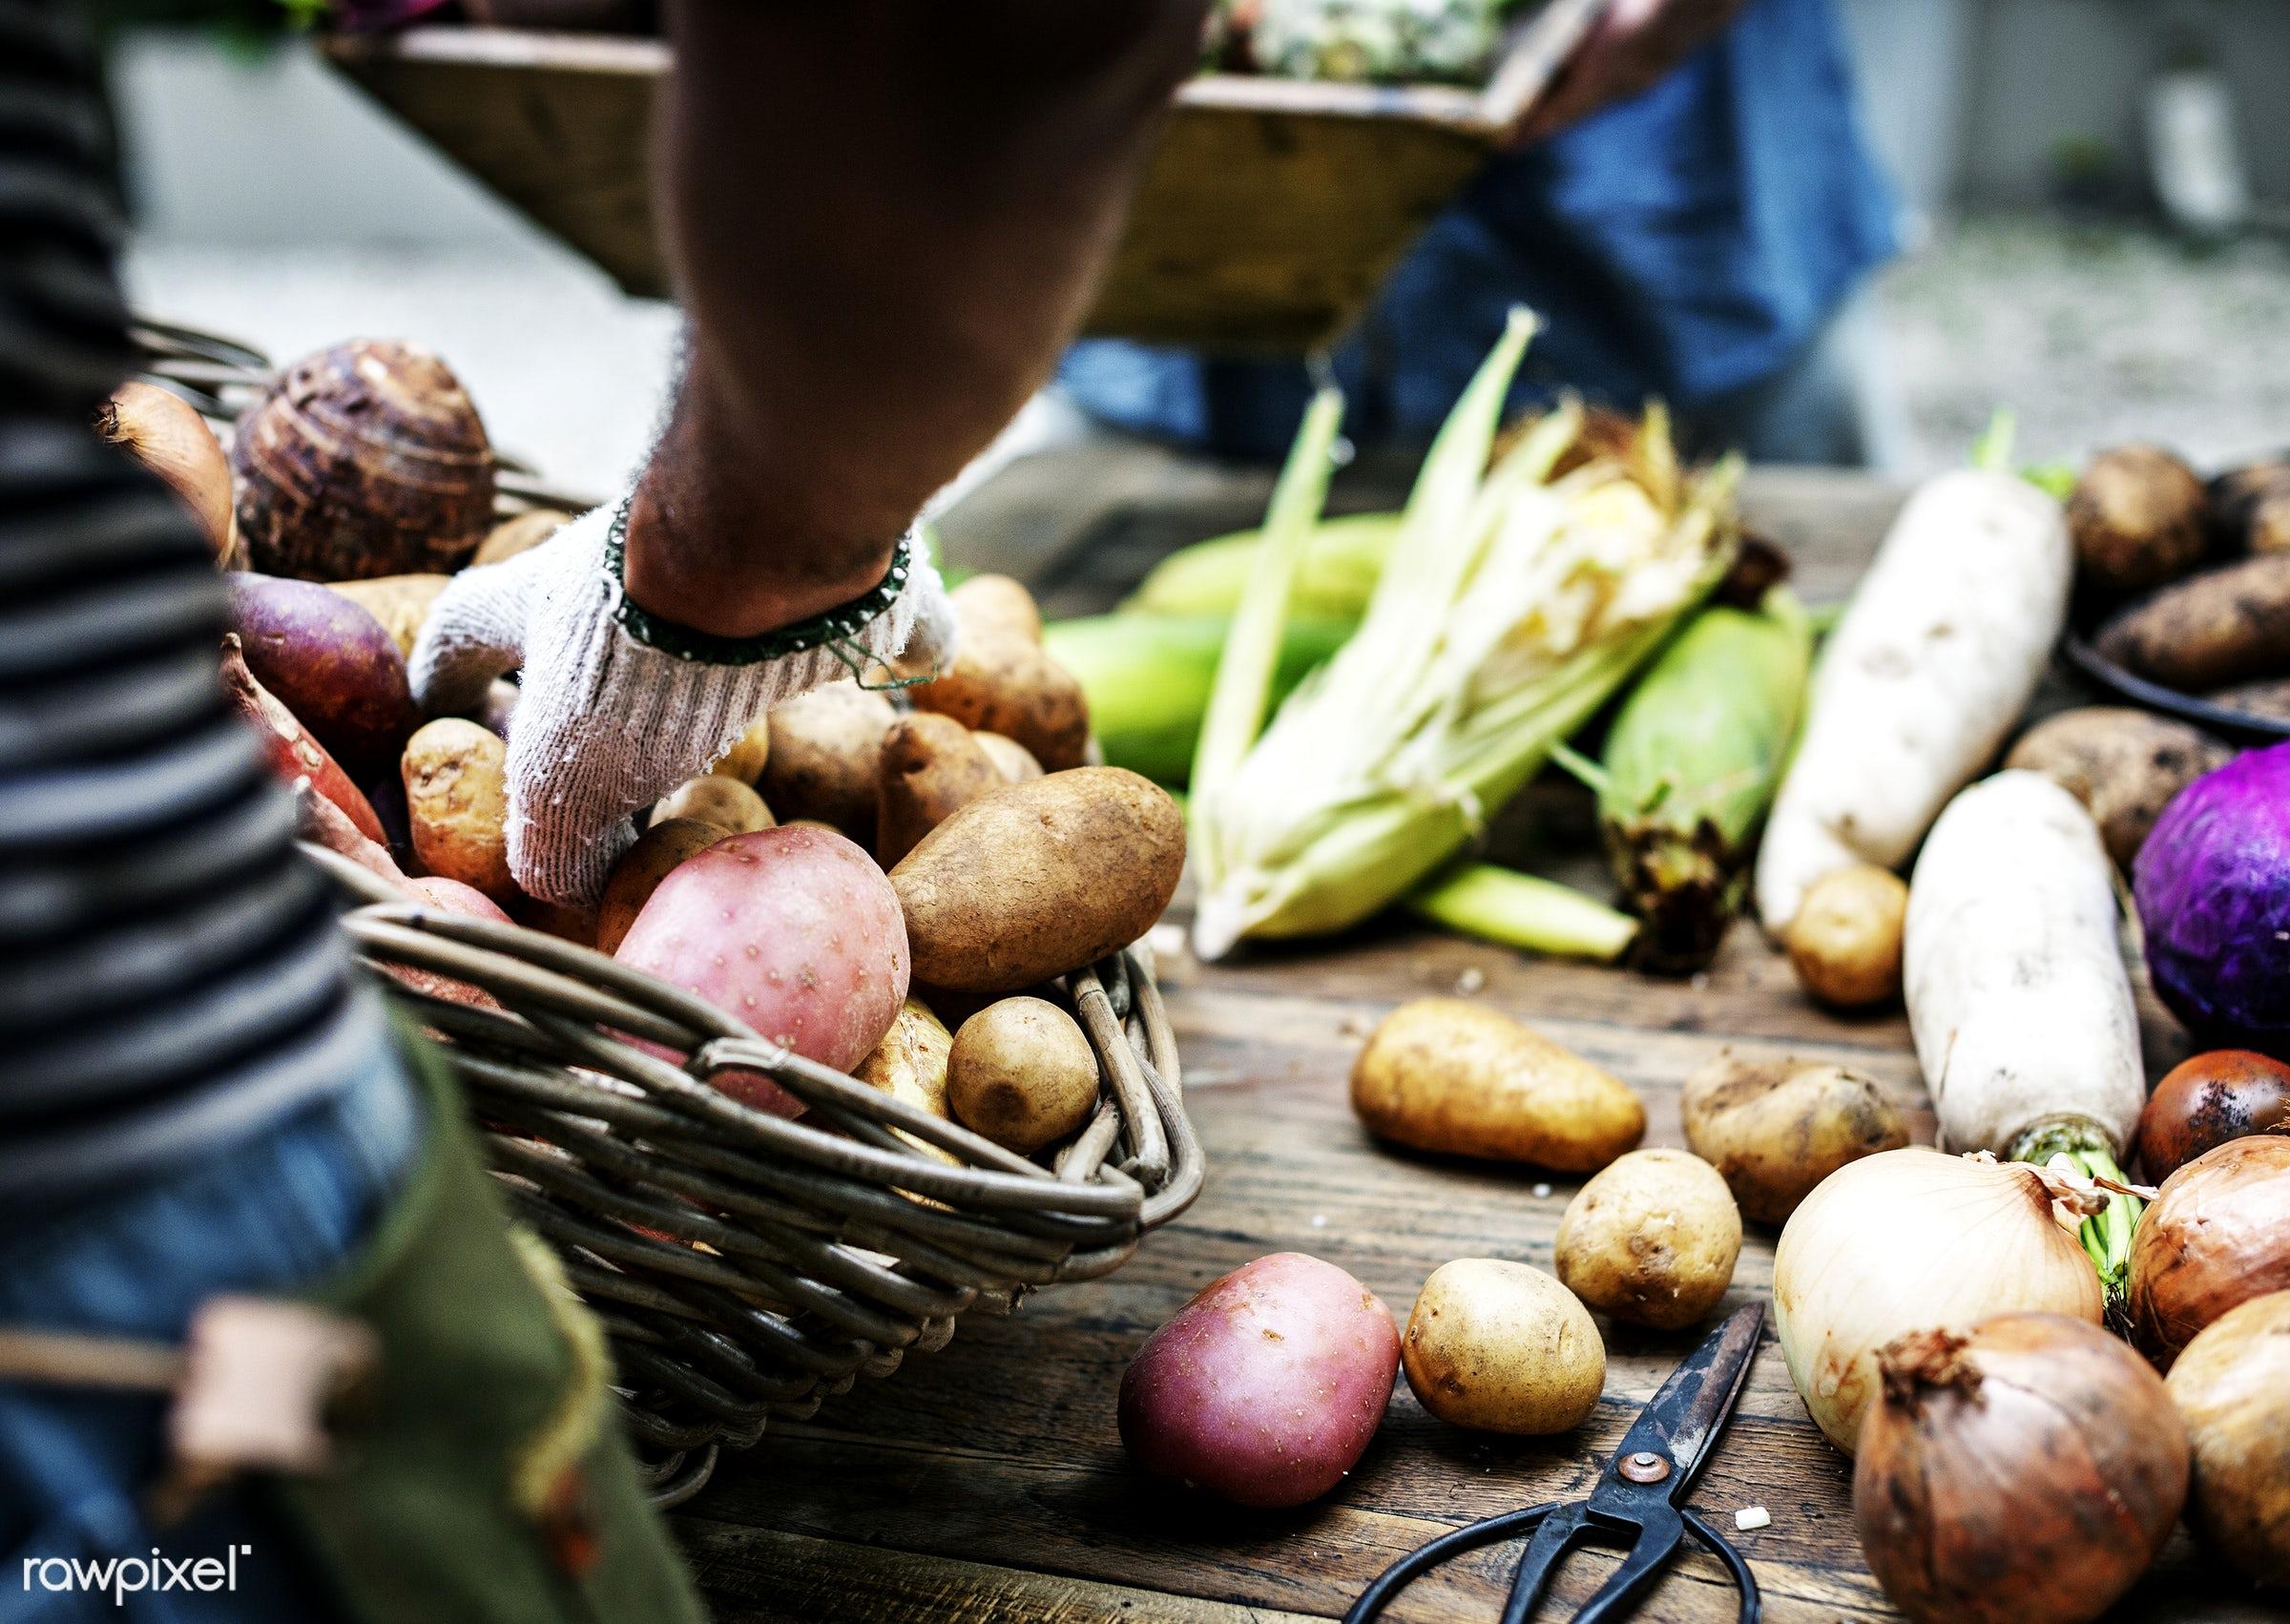 A person arranging potatoes at a stall  - raw, diverse, herbs, potatoes, farm, ingredients, farmer, nature, fresh, hands,...